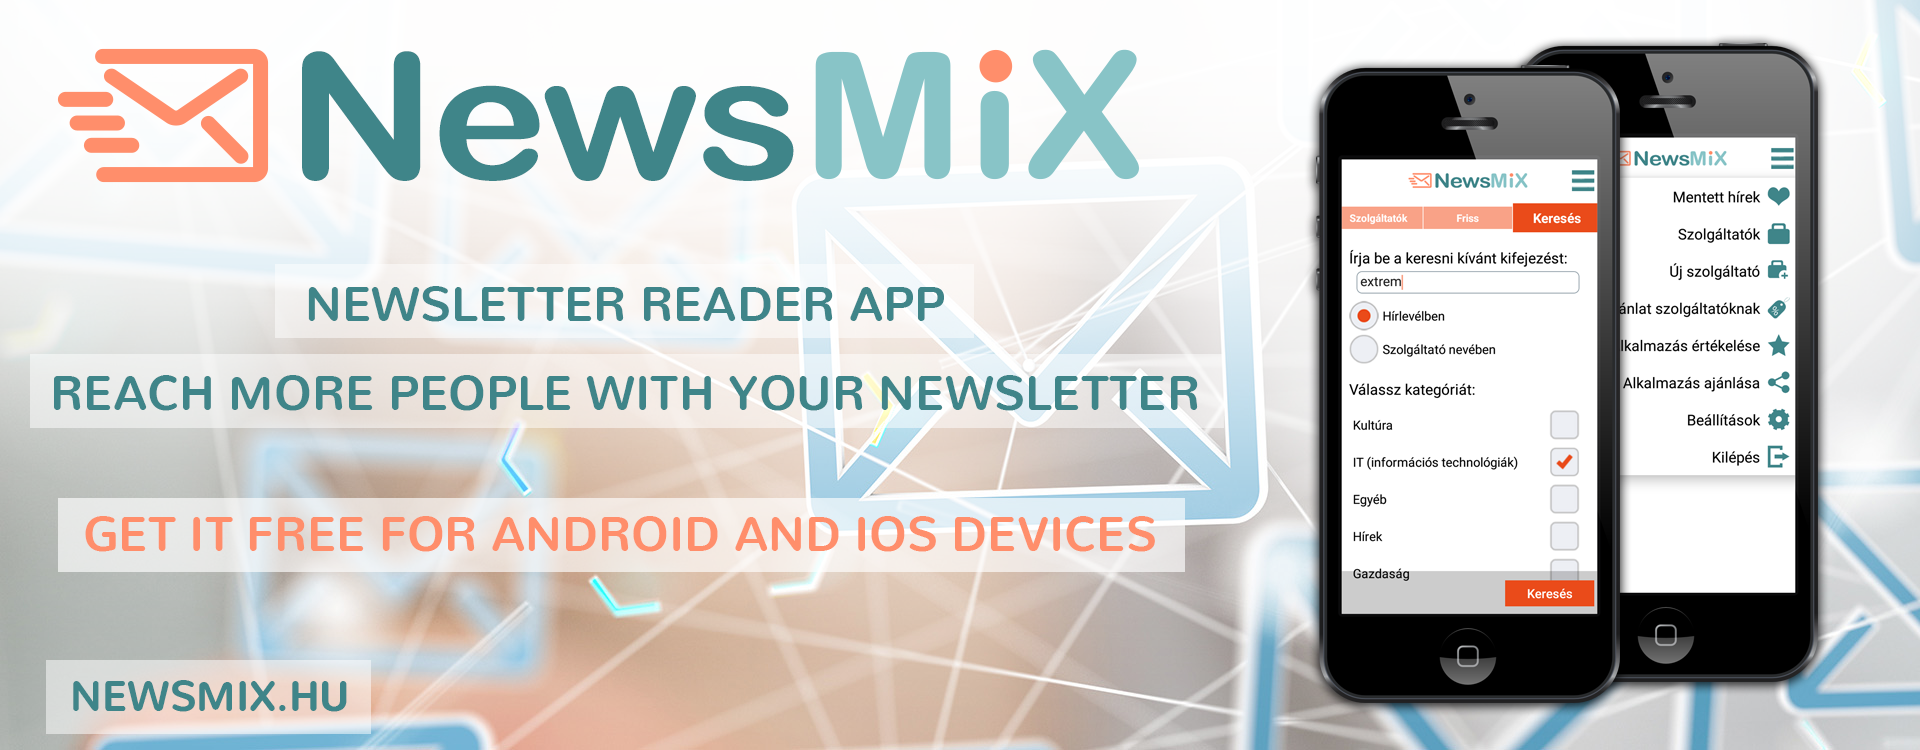 newsmix_slider_en